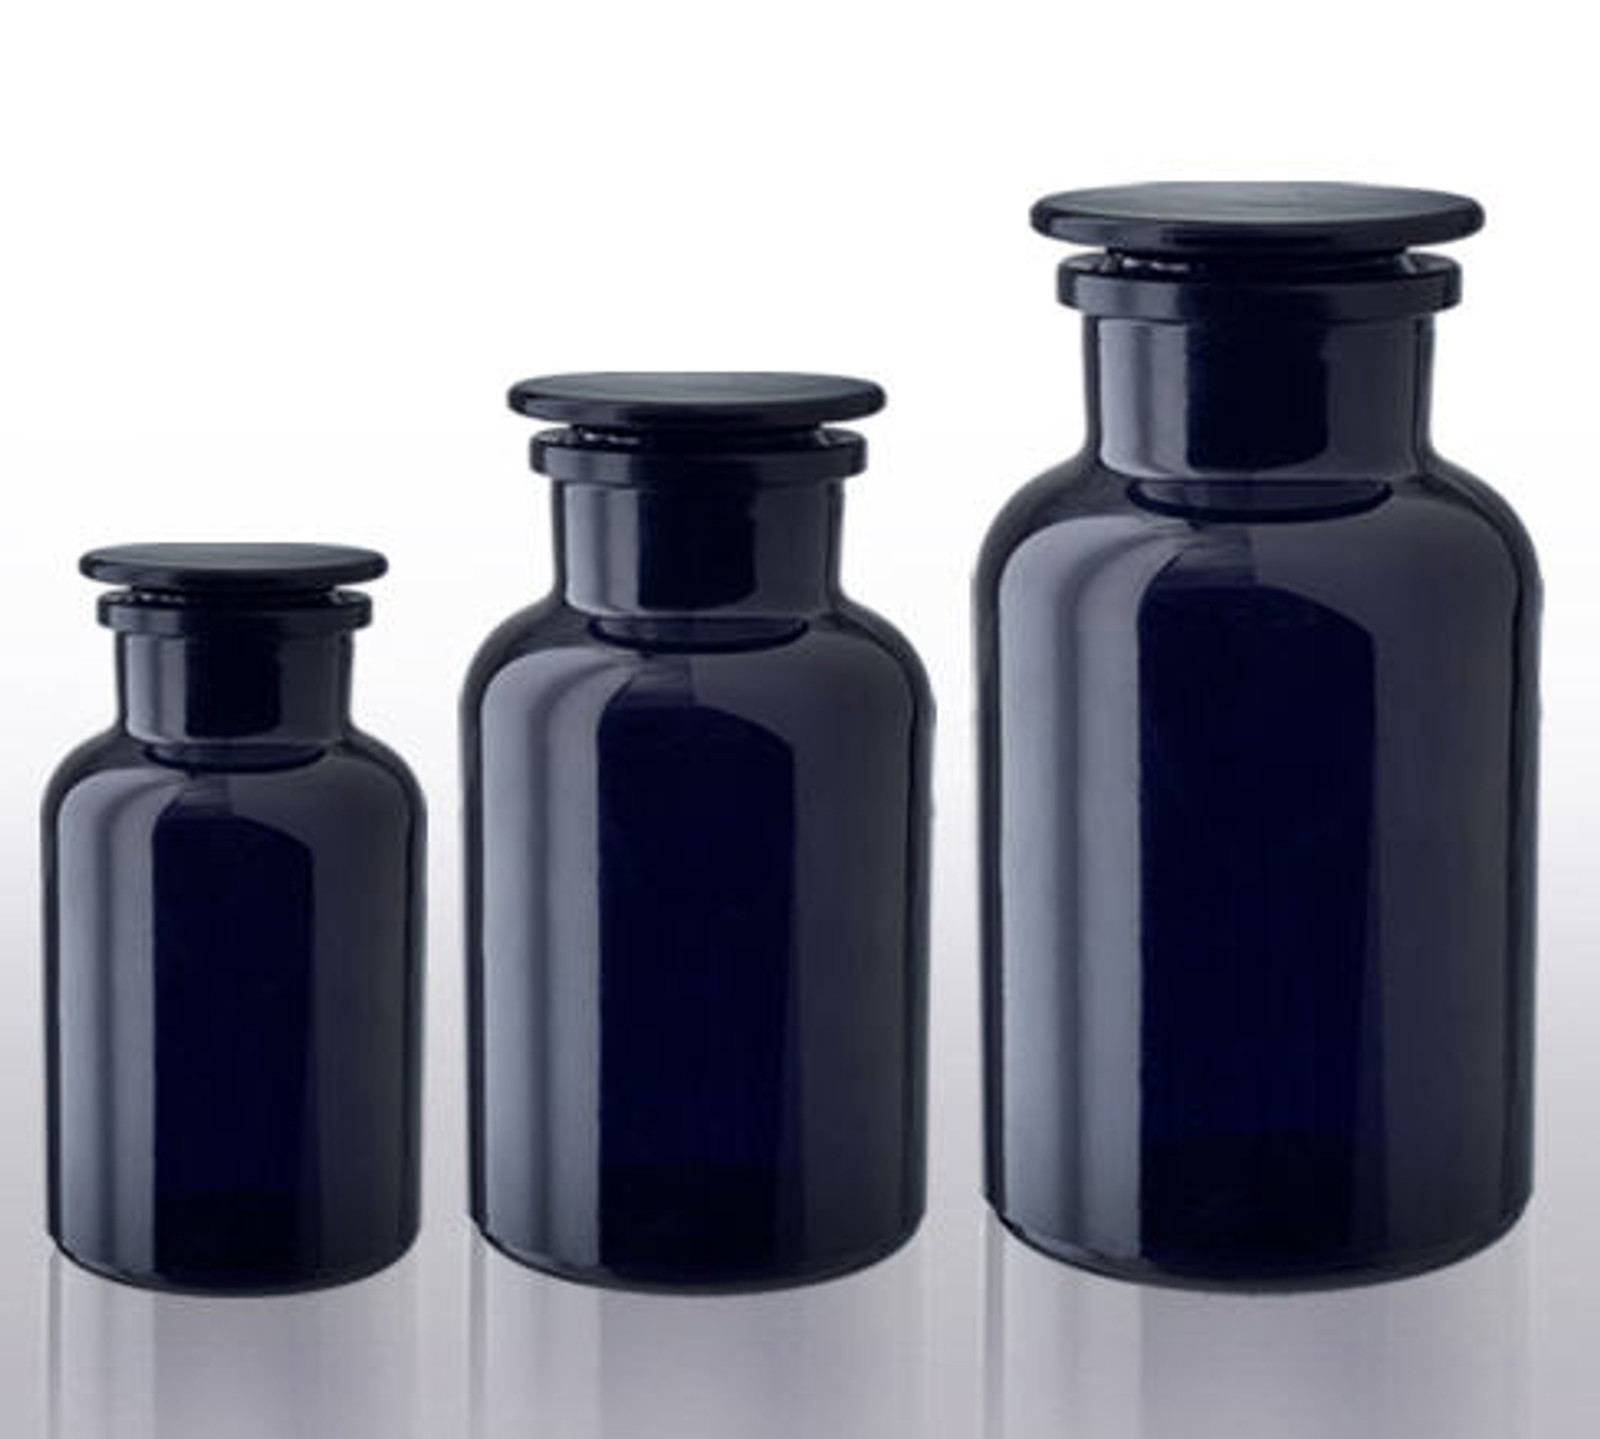 Apothecary Jar canister set. (1) 2 liter for flour or specialty flour storage. (1) 1 liter for coffee, powder sugar or bean storage. (1) 500 ml for nuts, herb or bean storage.